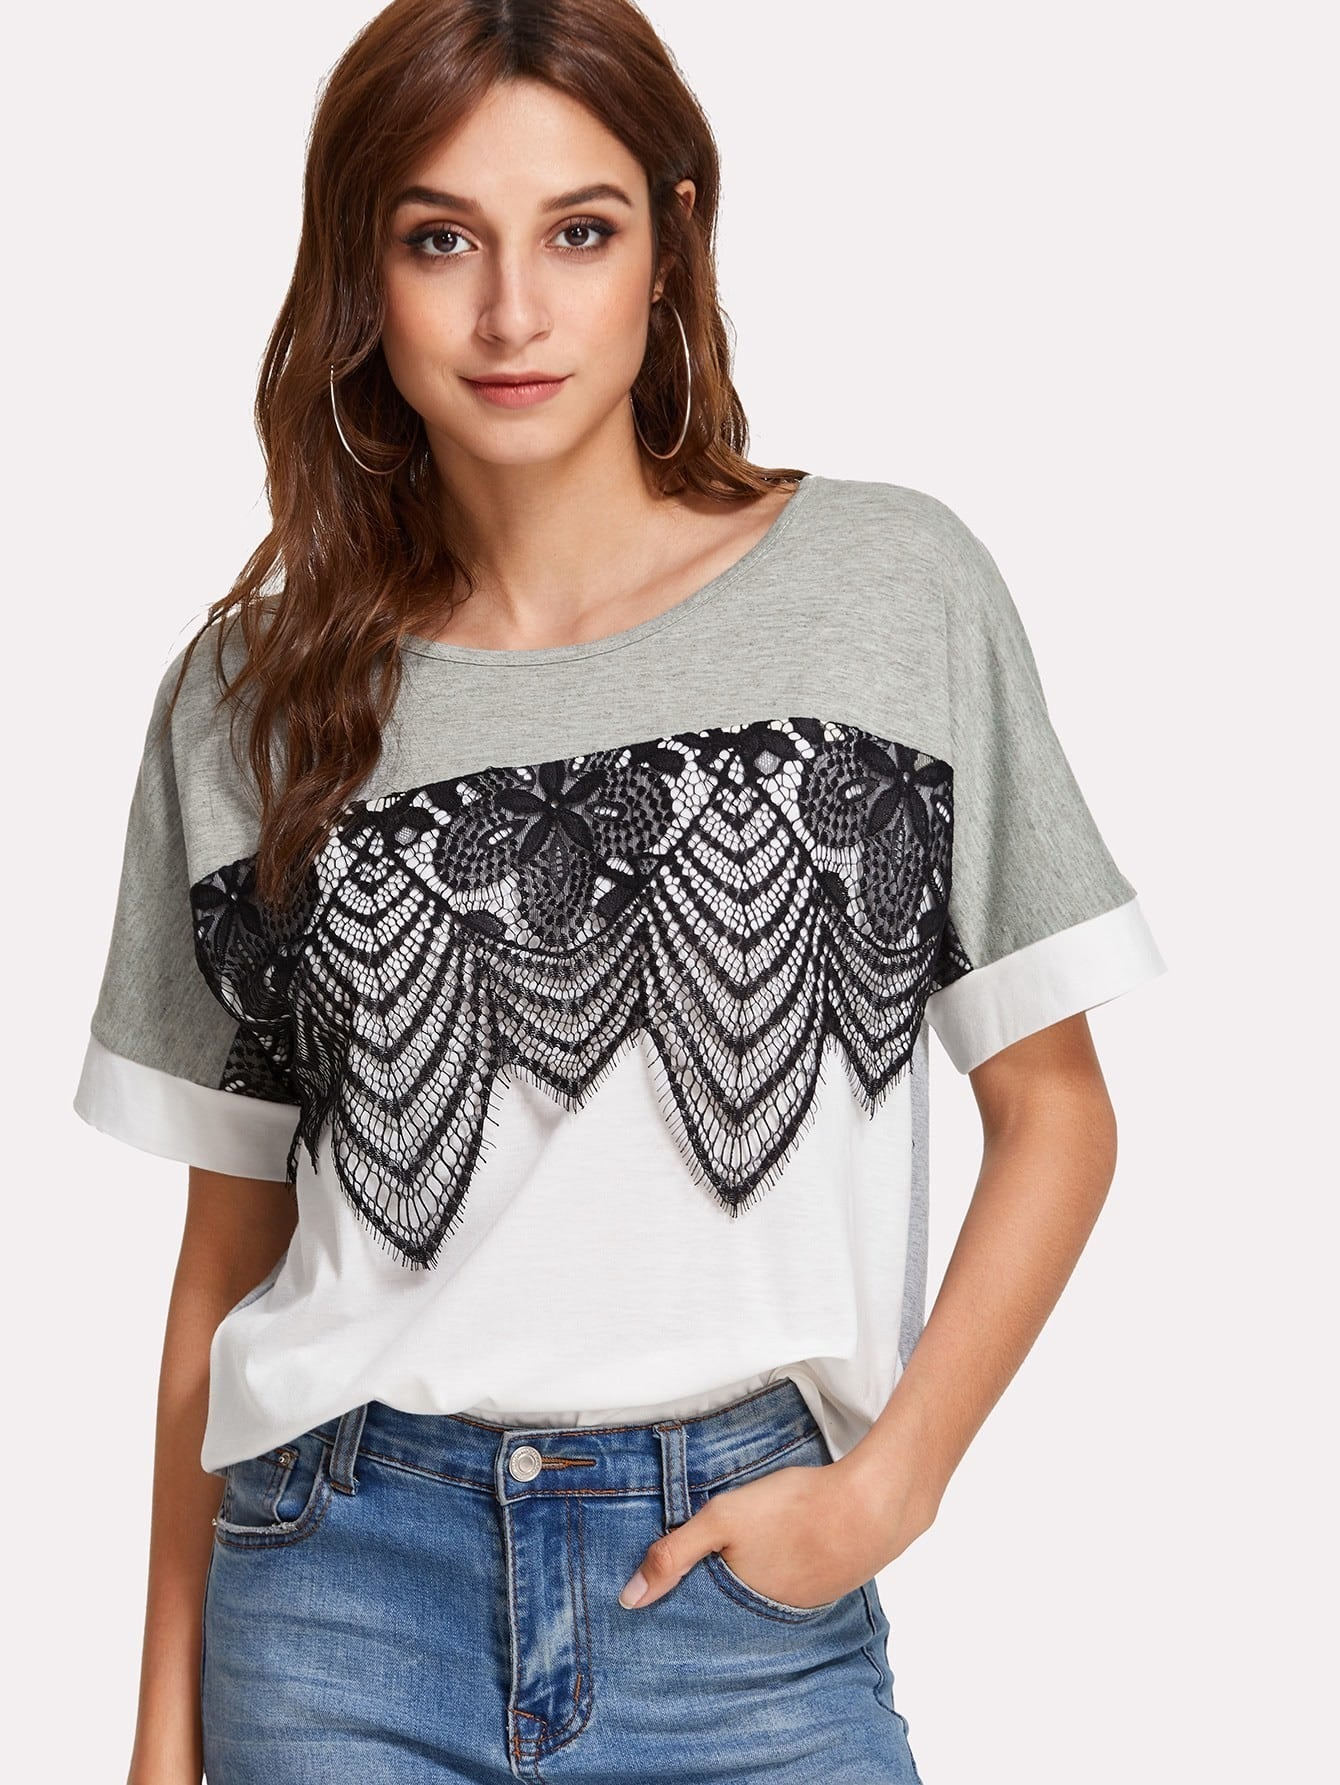 Lace Applique Two Tone T-shirt two tone mixed stripe t shirt